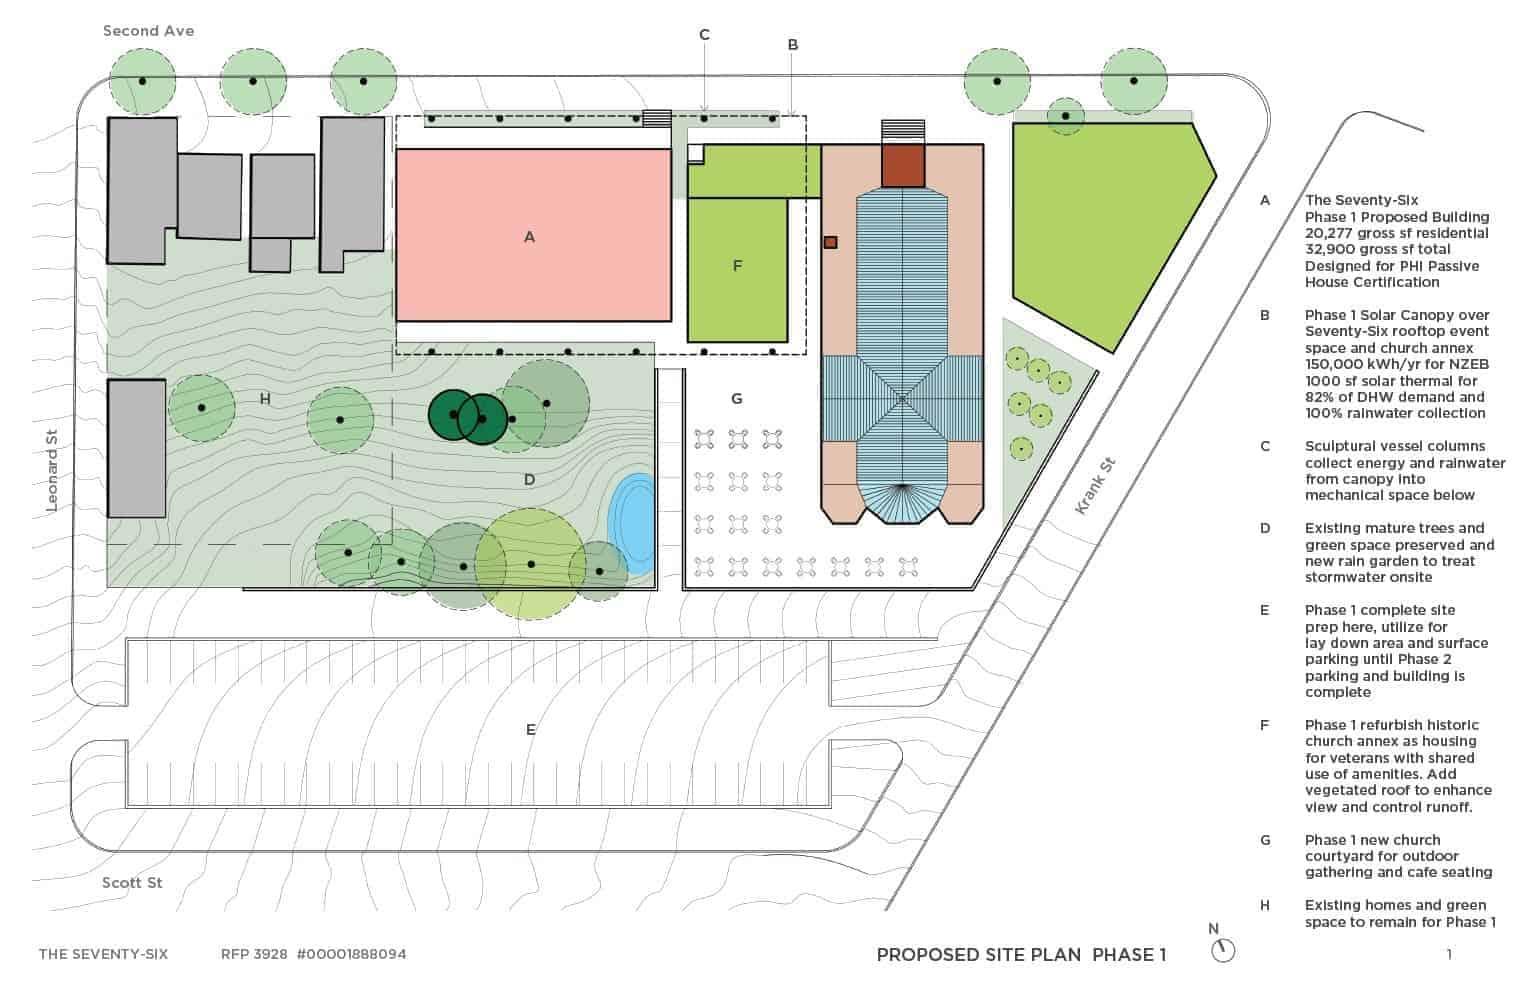 Phase 1 Site Plans